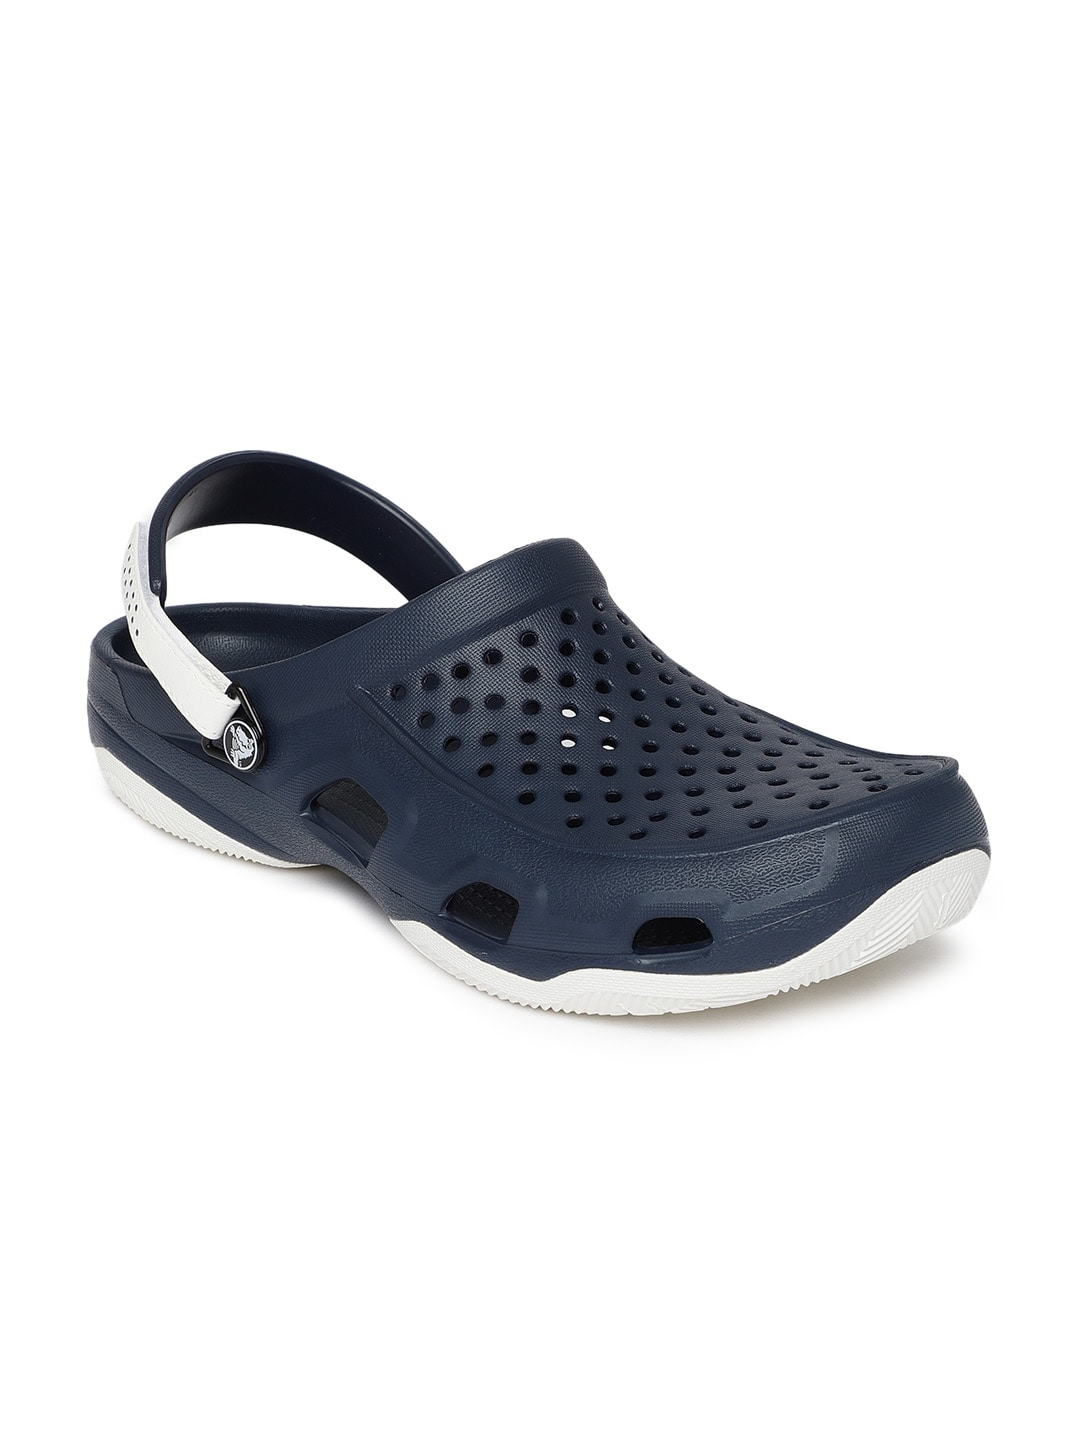 ffec1678c02e Crocs Men Footwear - Buy Crocs Shoes and Sandals For Men Online in India